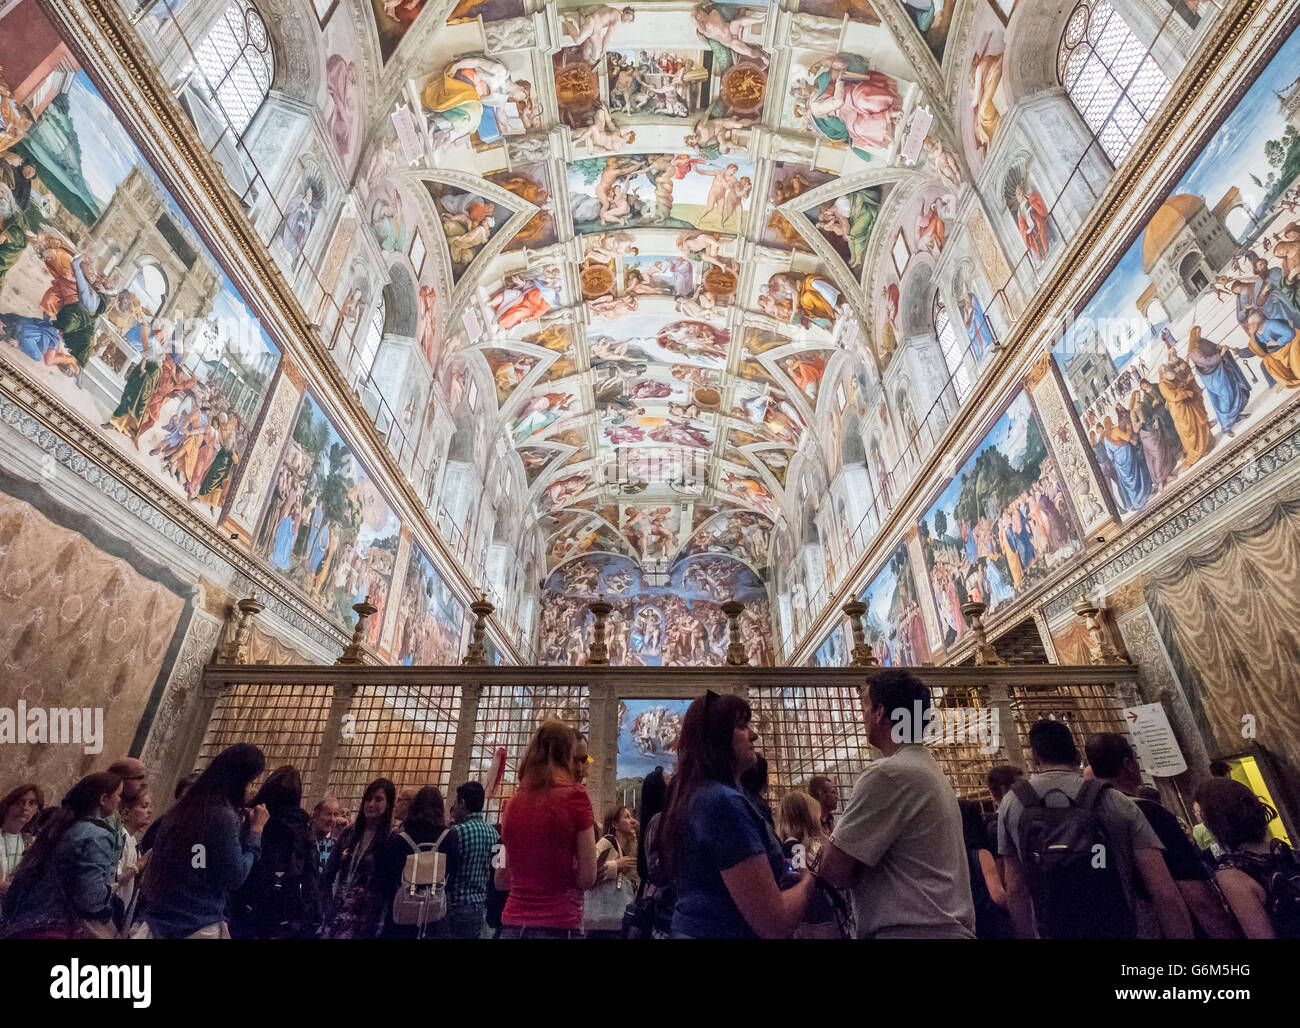 tourists looking at ceiling in Sistine Chapel in the Vatican Museum in Rome, Italy - Stock Image